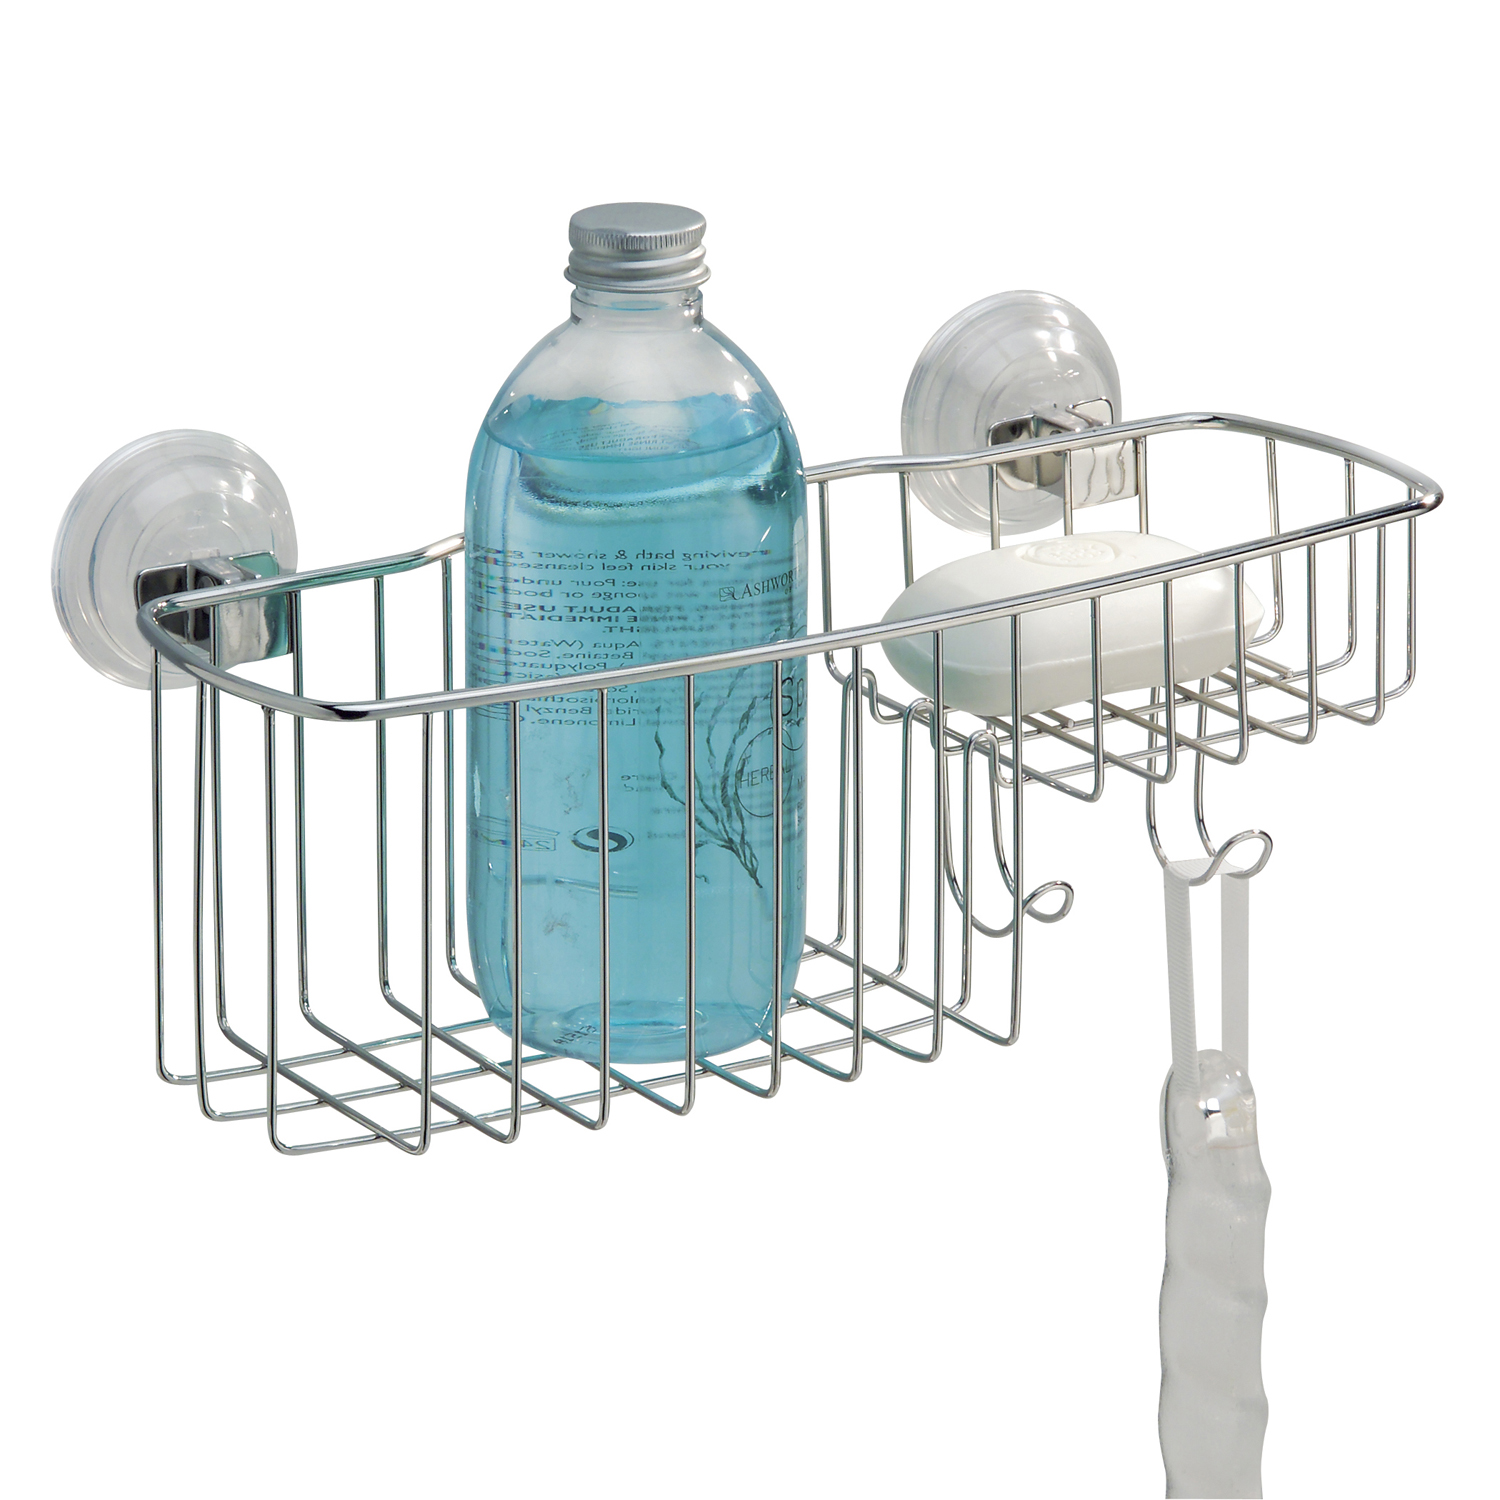 Reo Combo Basket Stainless Steel - Home Store + More